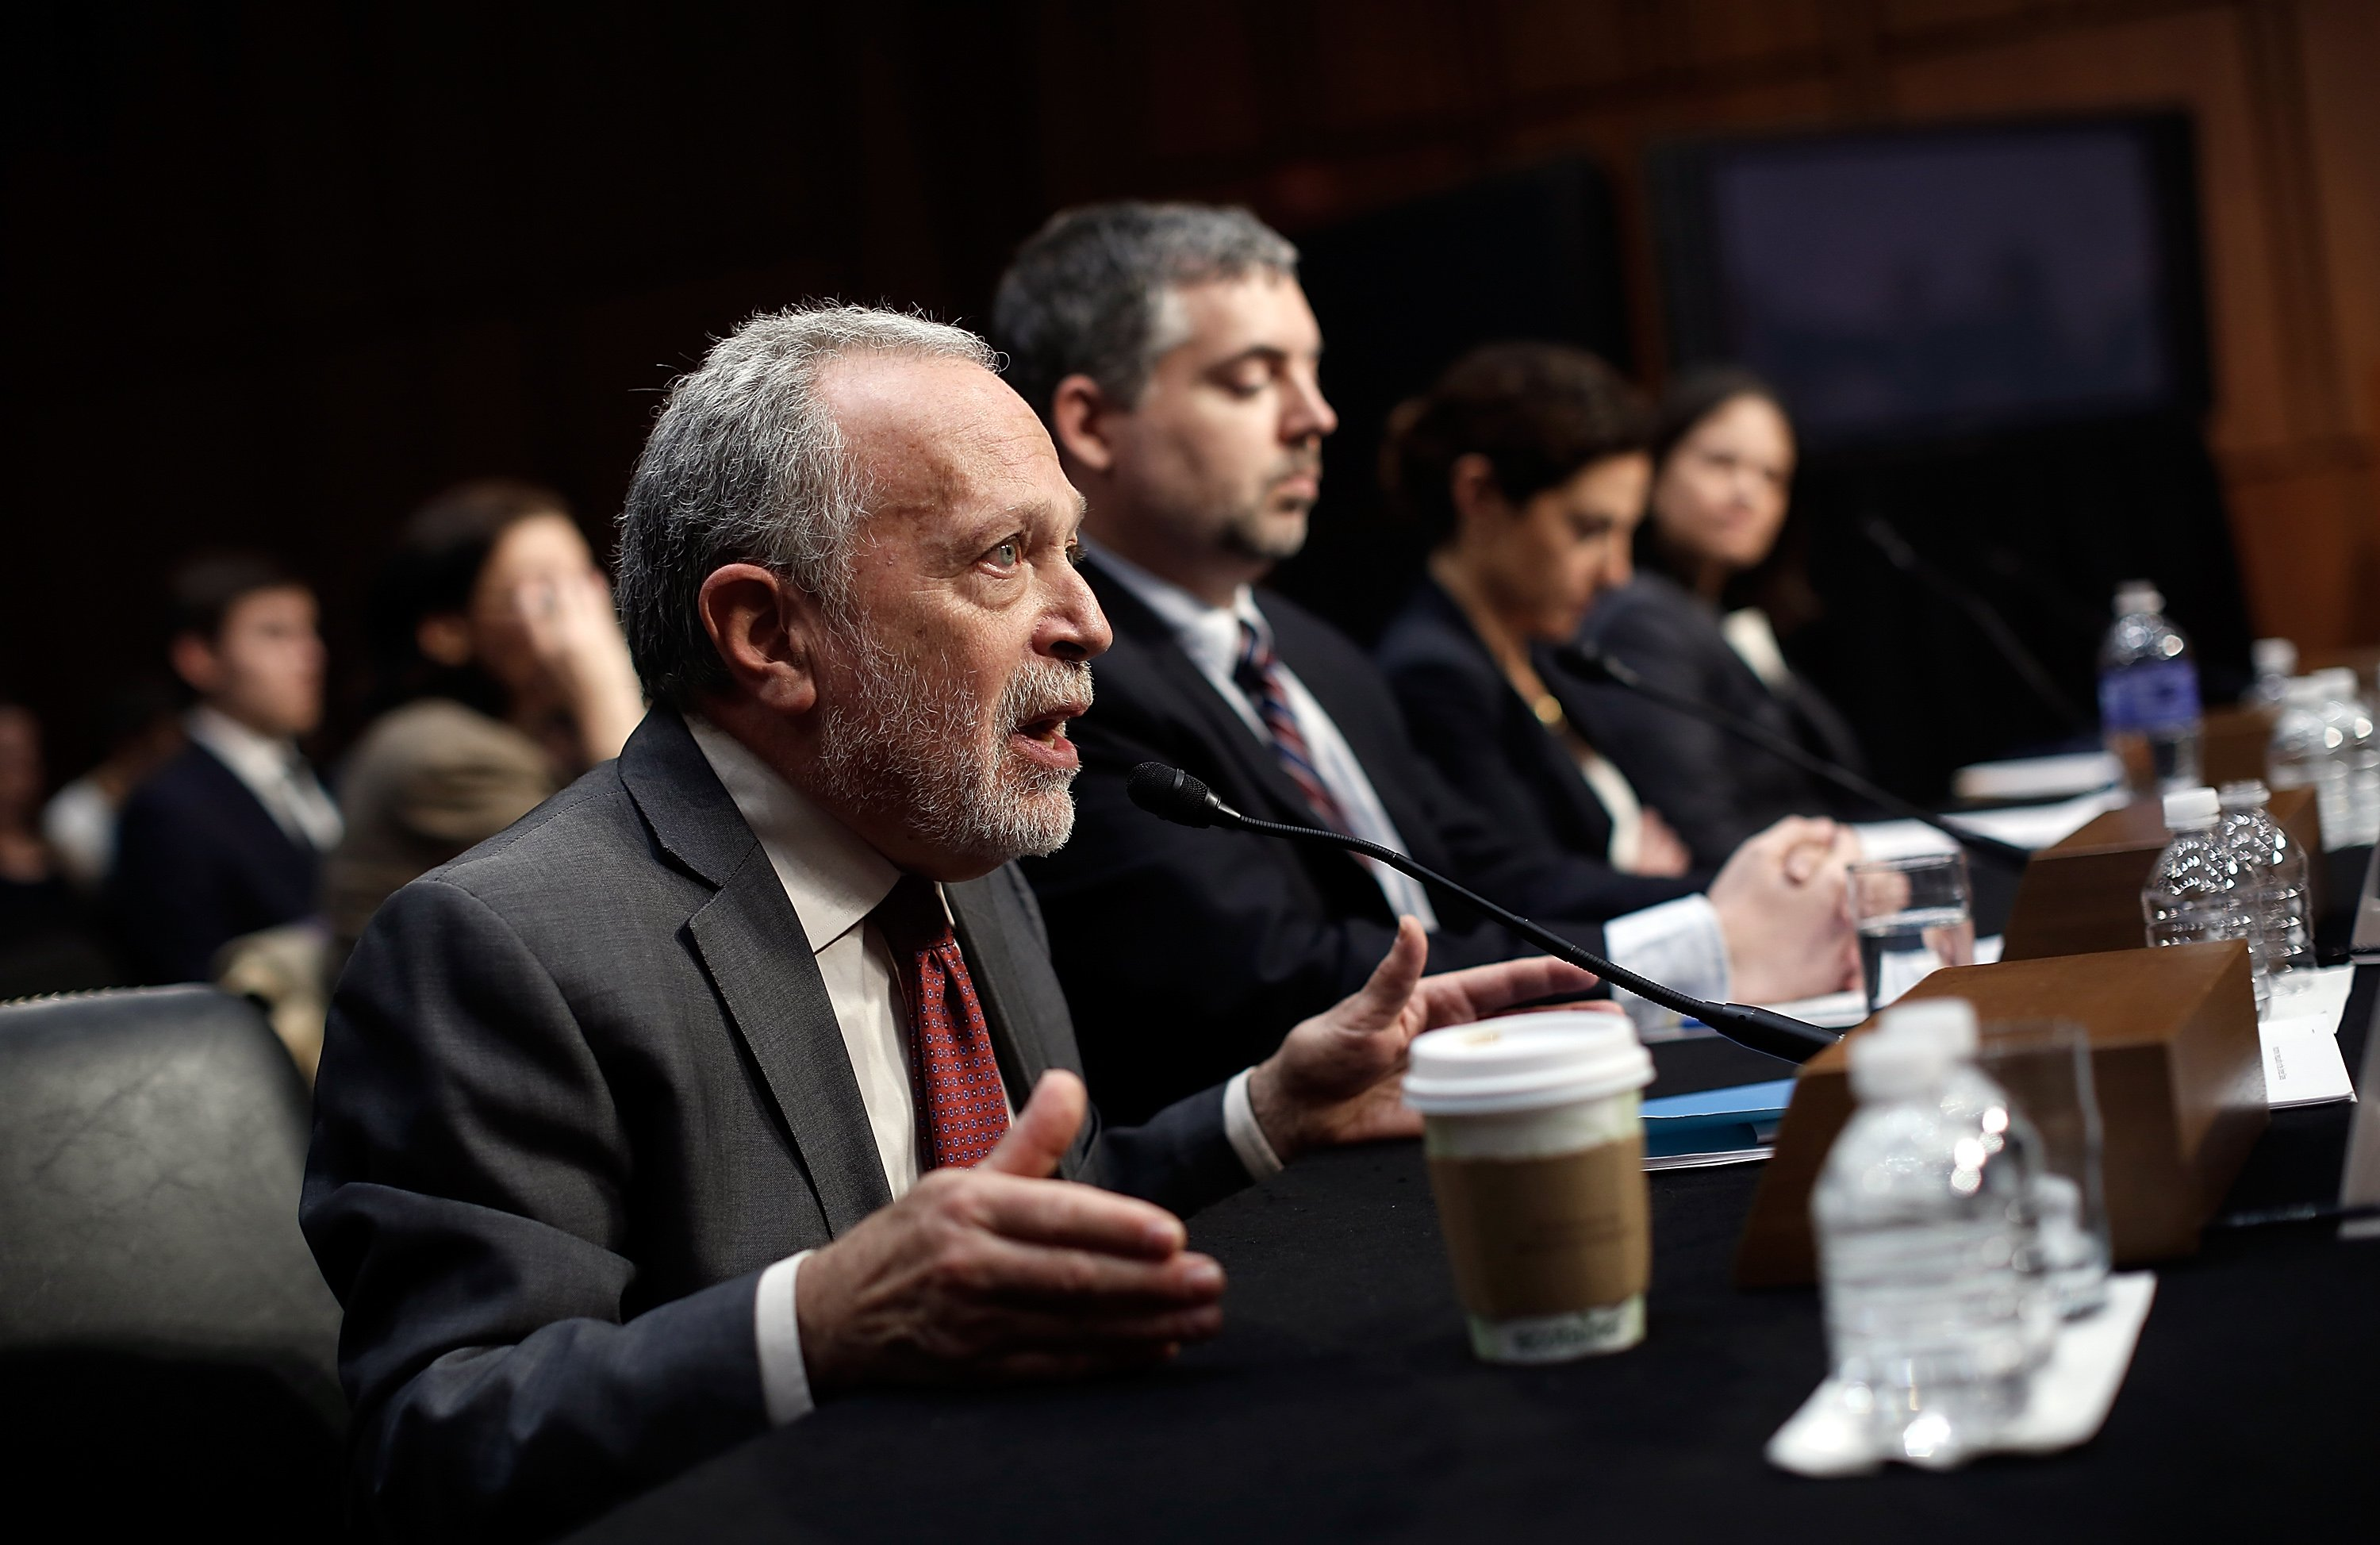 Former U.S. Labor Secretary Robert Reich (L) testifies before the Joint Economic Committee on January 16, 2014, in Washington, DC. Reich joined a panel testifying on the topic of 'Income Inequality in the United States.| Photo: GettyImages